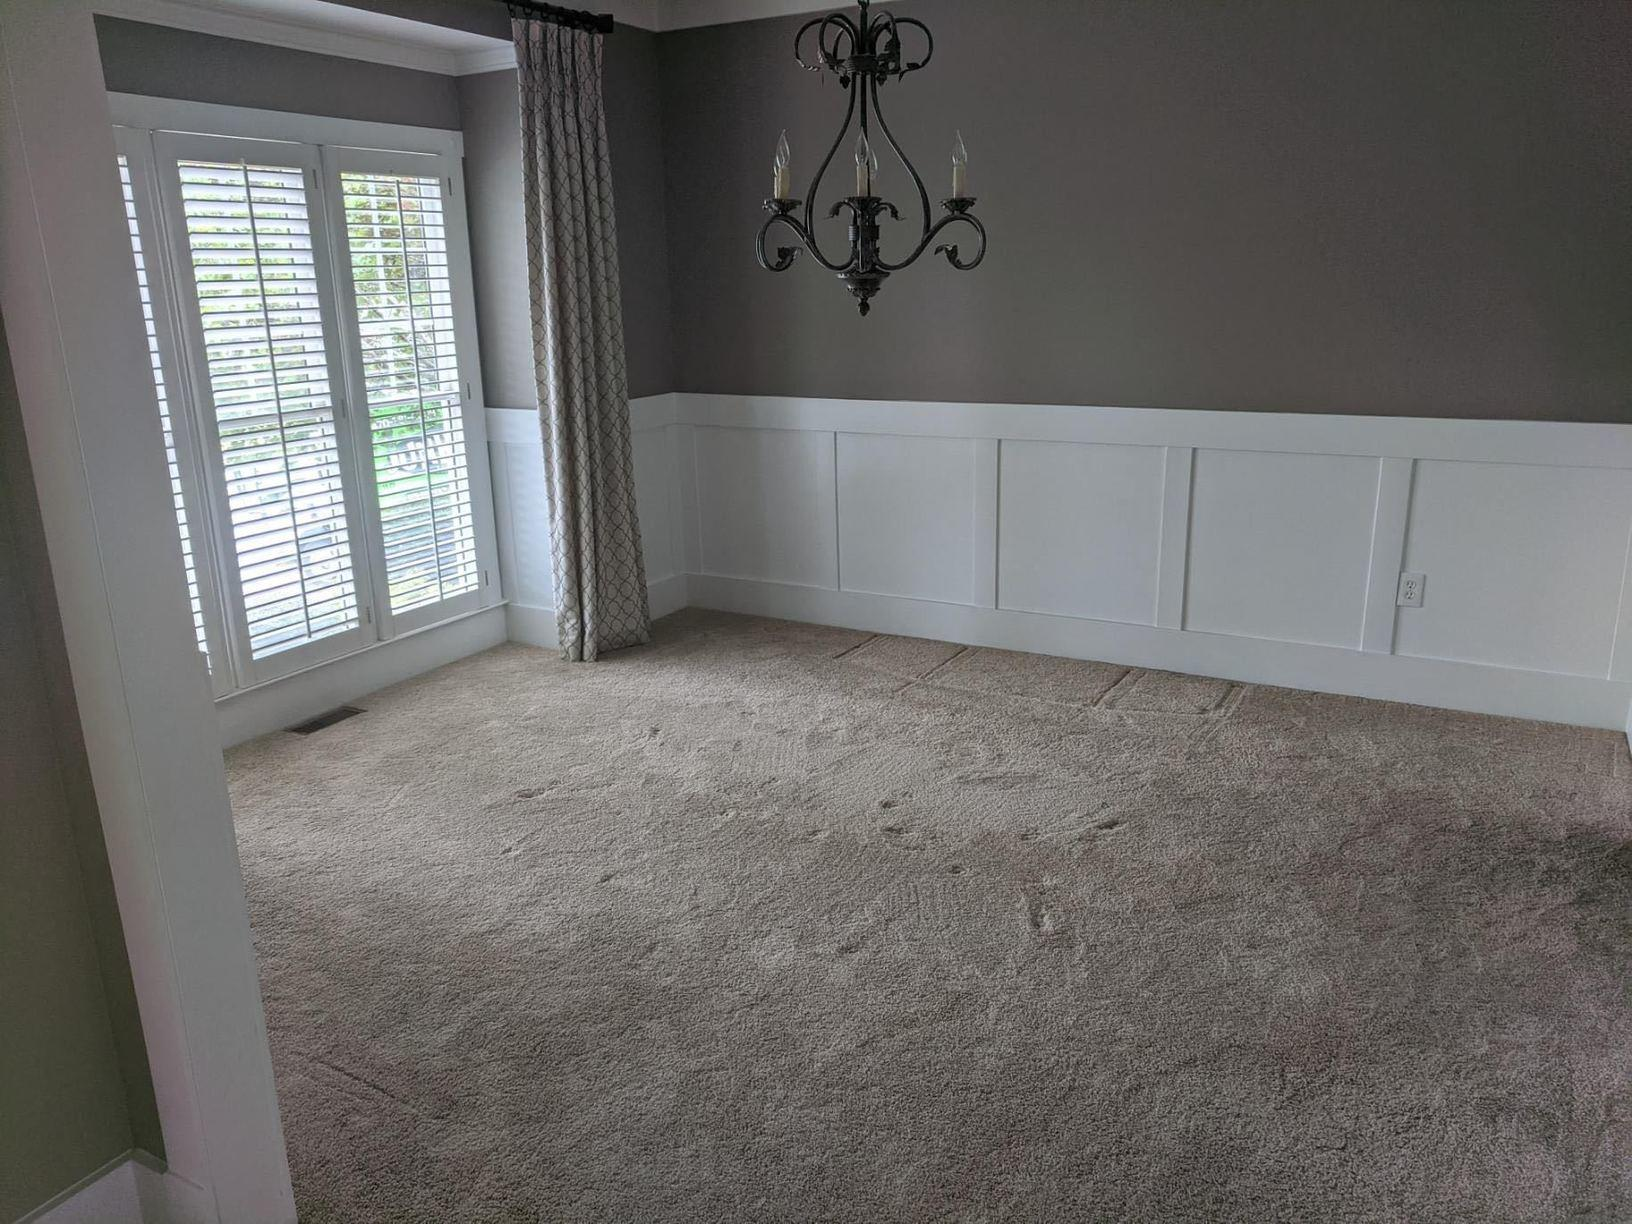 Furniture Removal in Gwinnett County, Georgia - After Photo